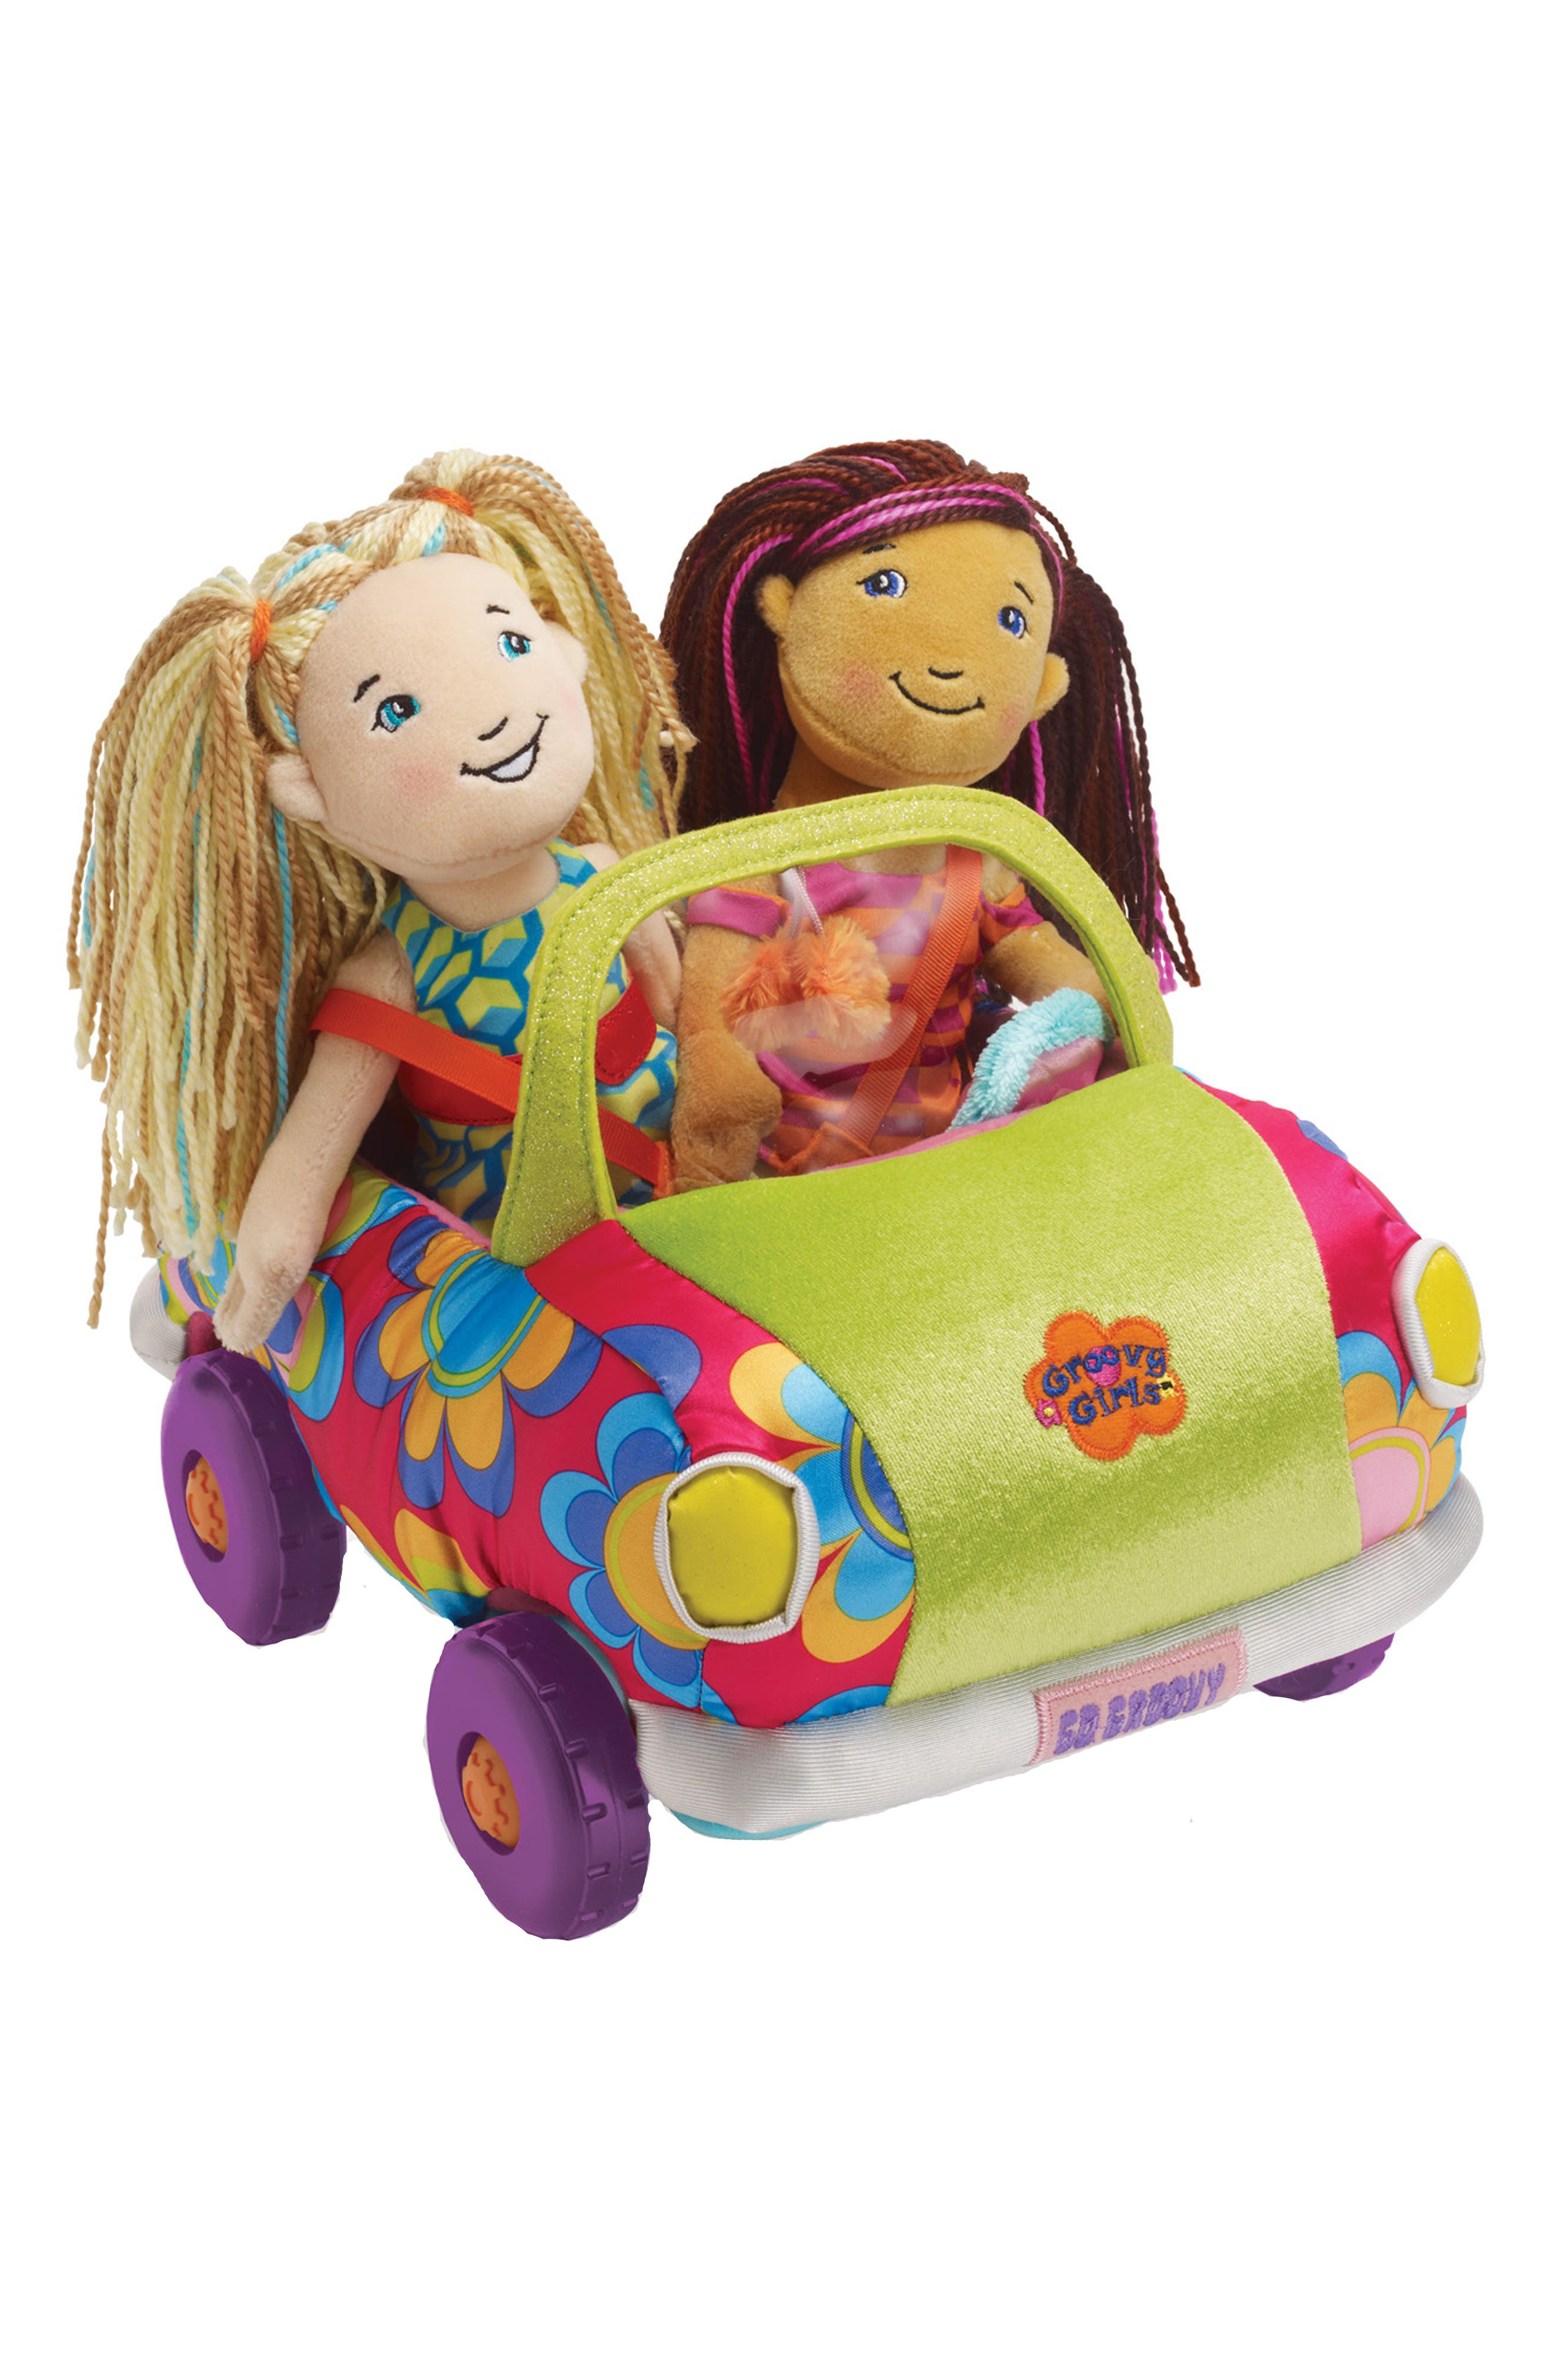 Groovy Girls - Wheelin' in Style Doll Mini Coupe,                             Alternate thumbnail 3, color,